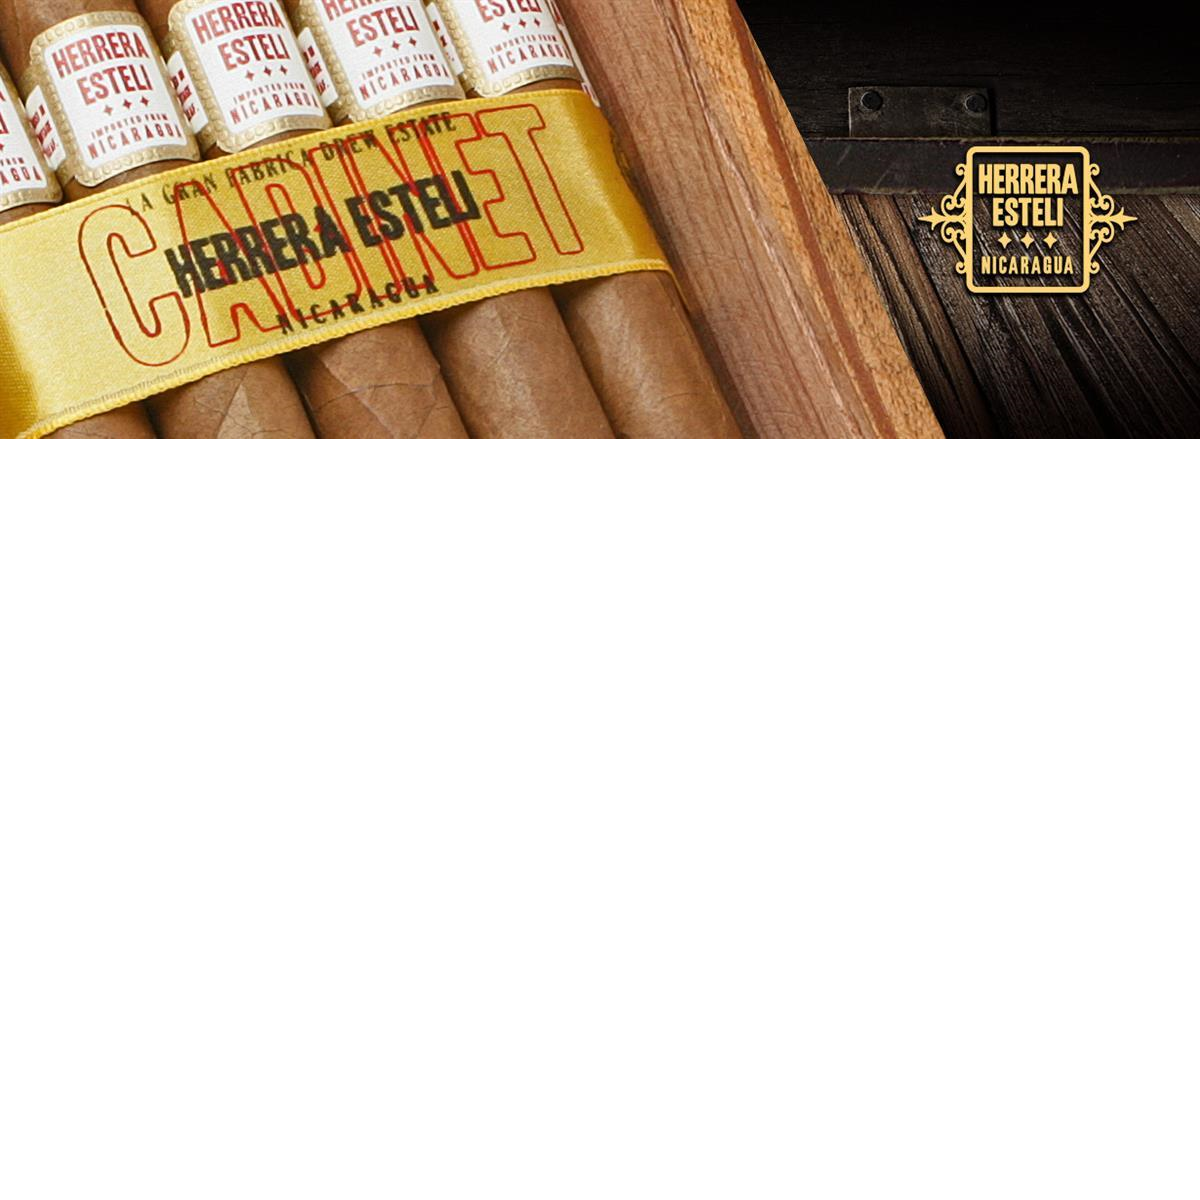 Herrera Esteli - Now Available at The Cigar Merchant - Roswell